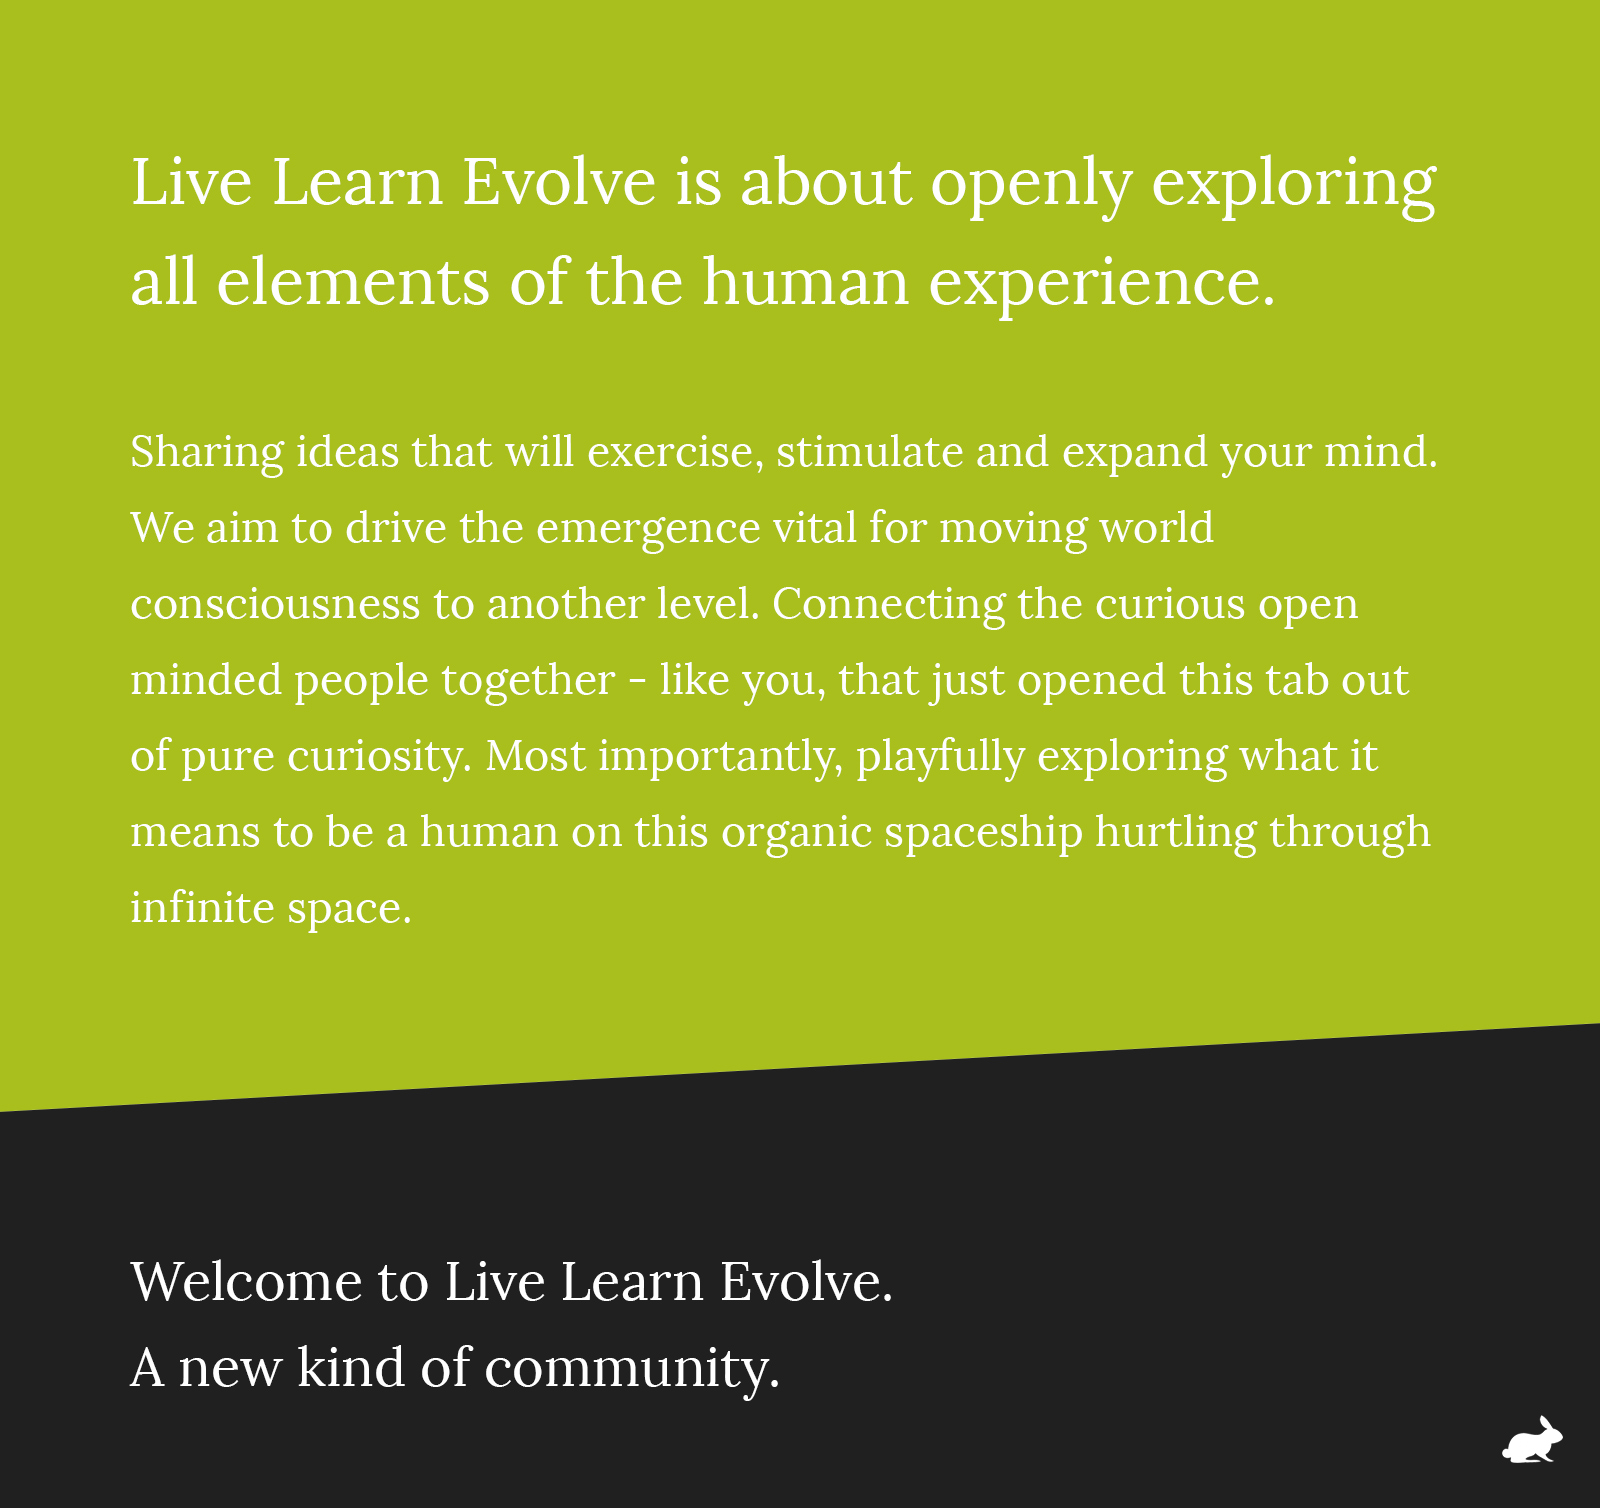 live_learn_evolove_our_mission_v2